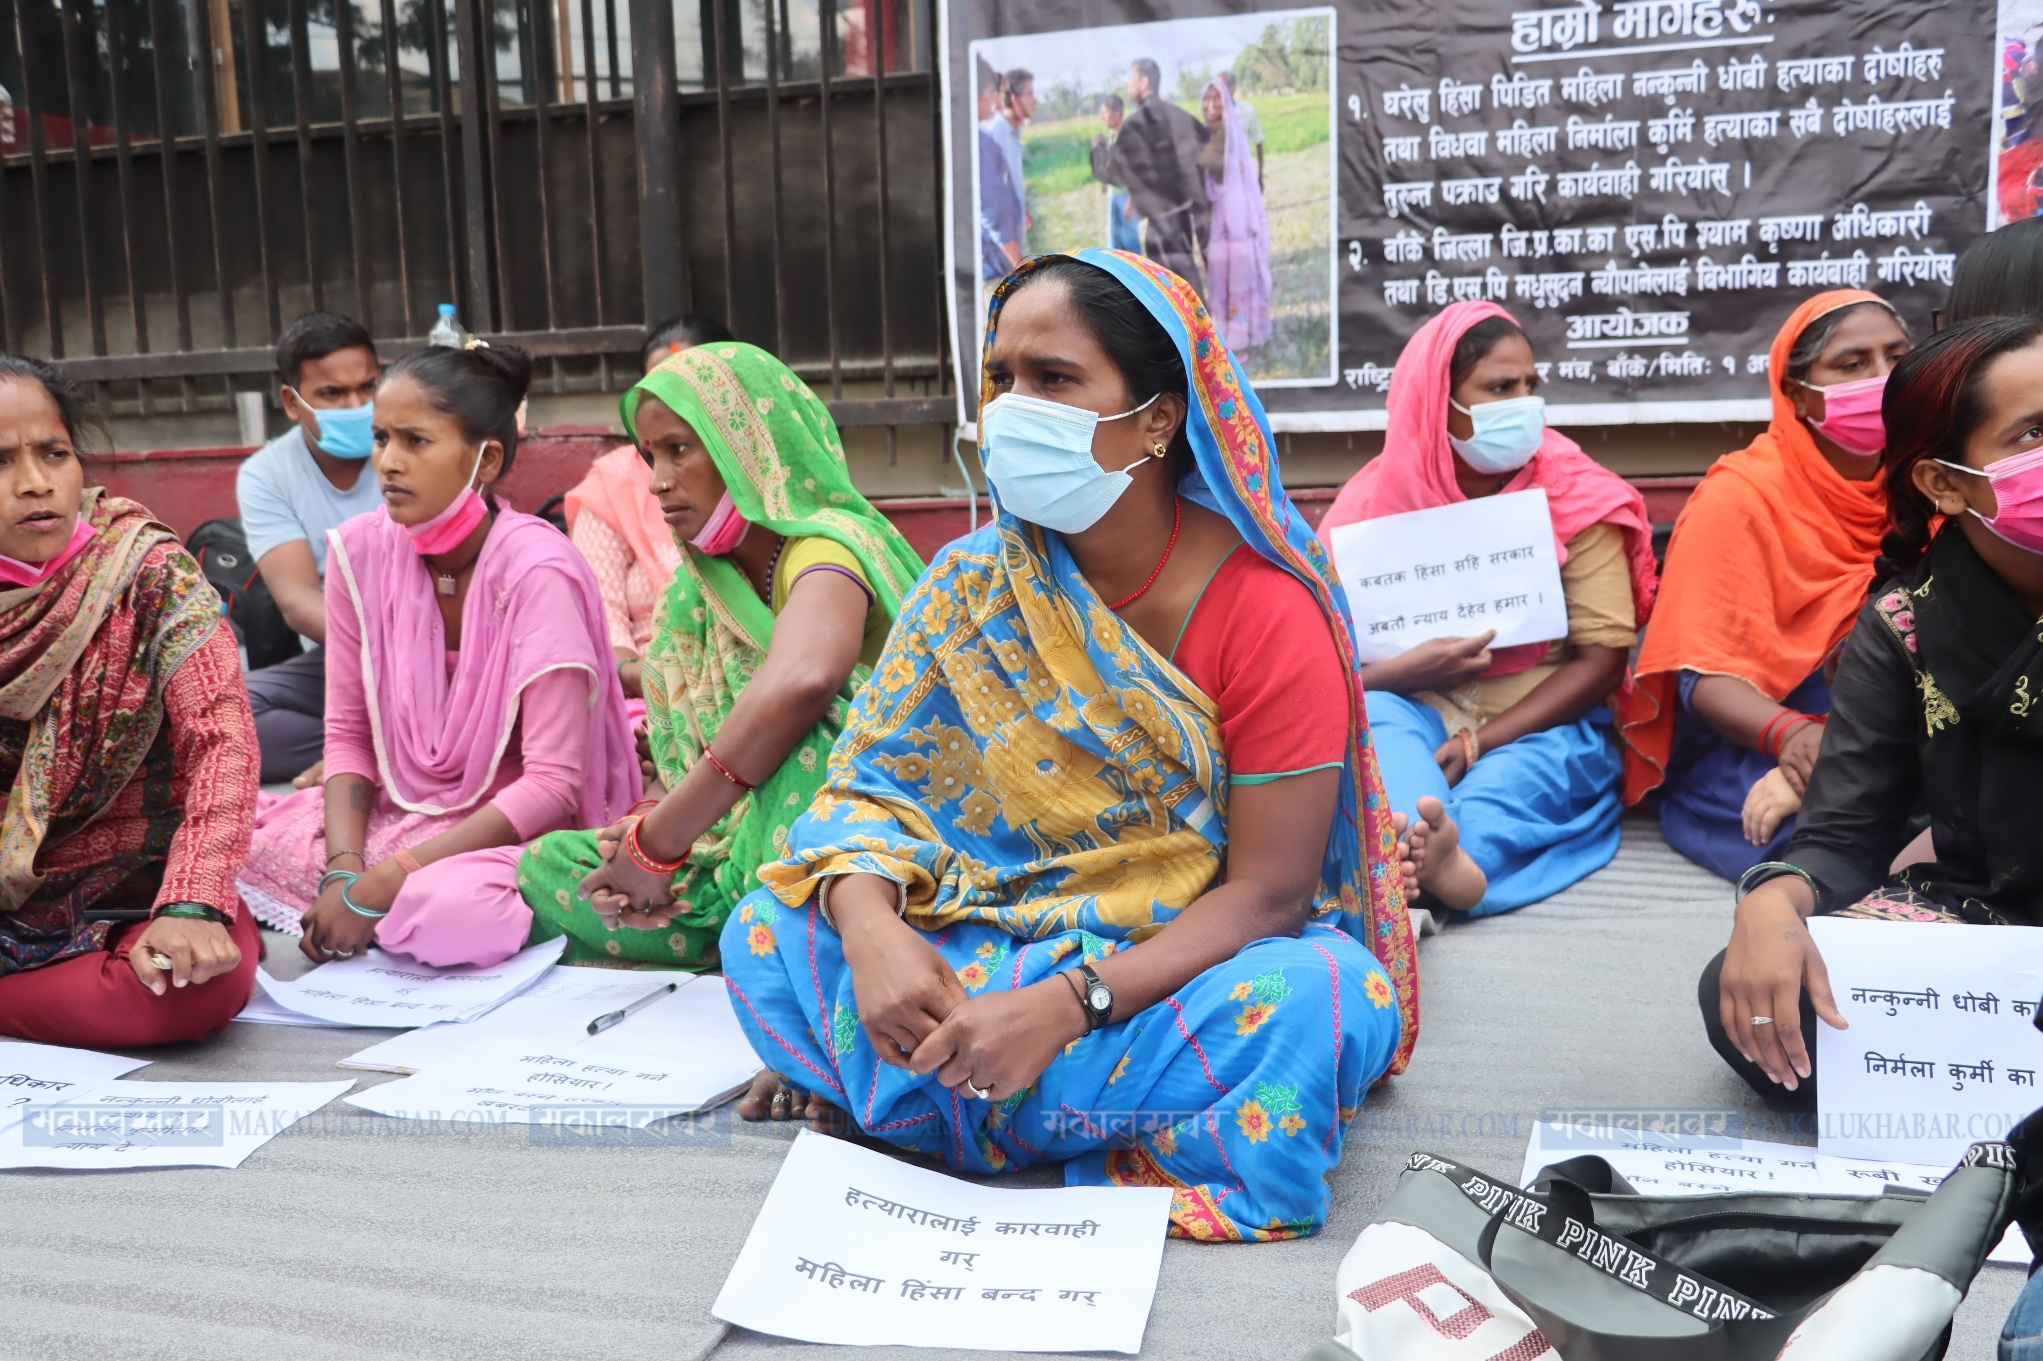 Sit-in at Maiti Ghar for justice of Dhobi and Kurmi [Photos]